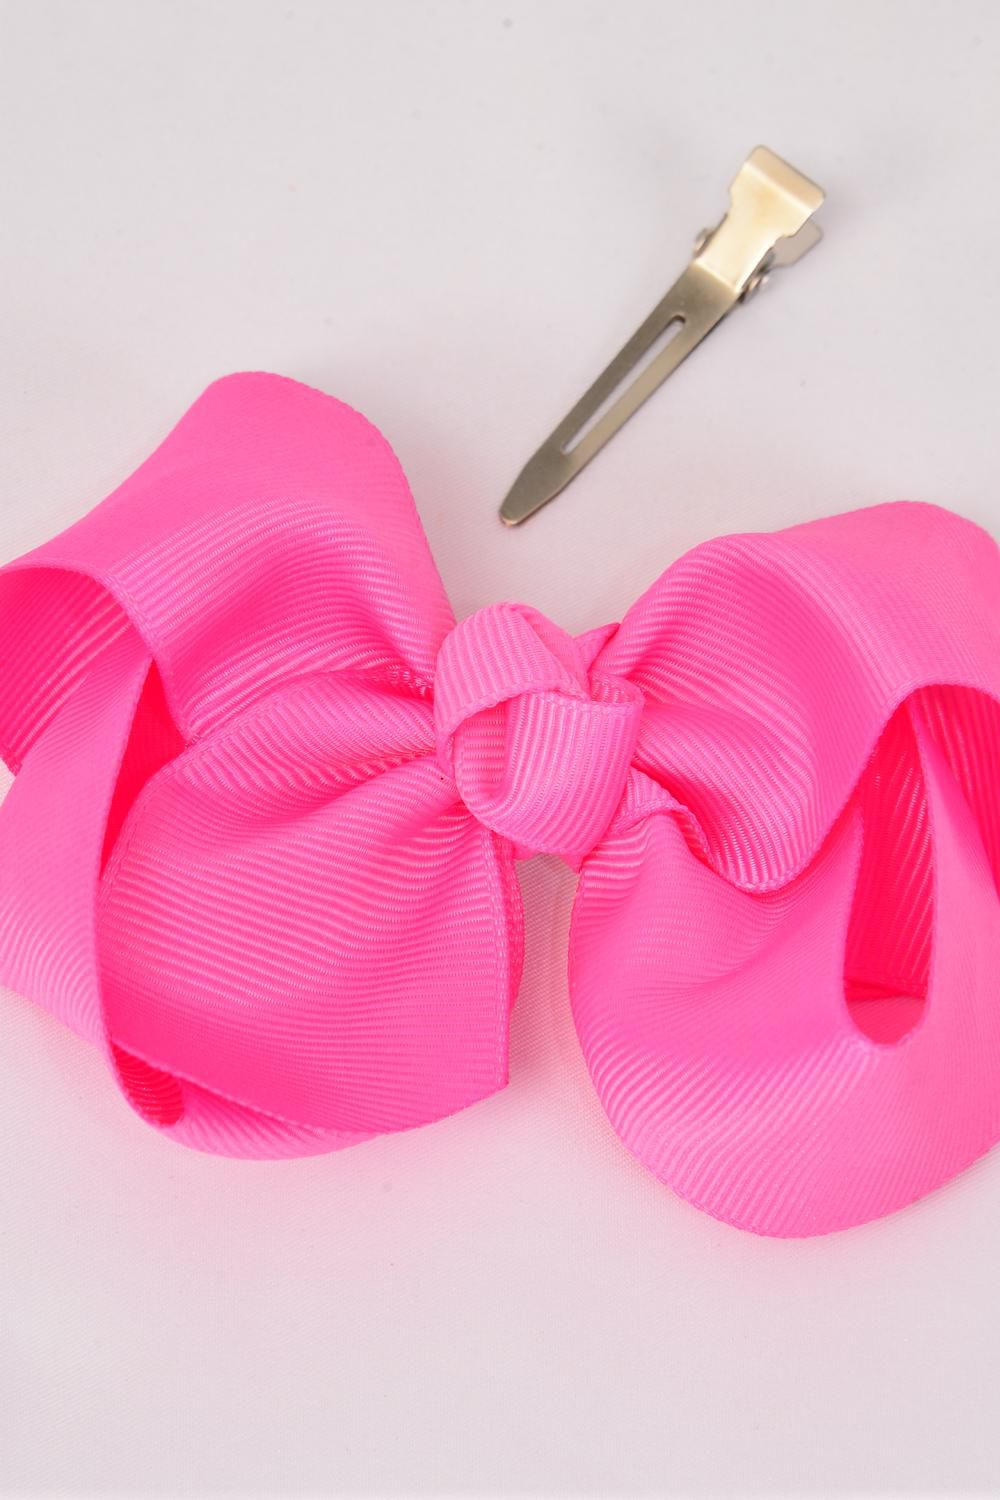 "Hair Bow Large 4""x 3"" Wide Hot Pink Alligator Grosgrain Bow-tie/DZ **Hot Pink** Alligator Clip,Size-4""x 3"" Wide,Clip Strip & UPC Code"